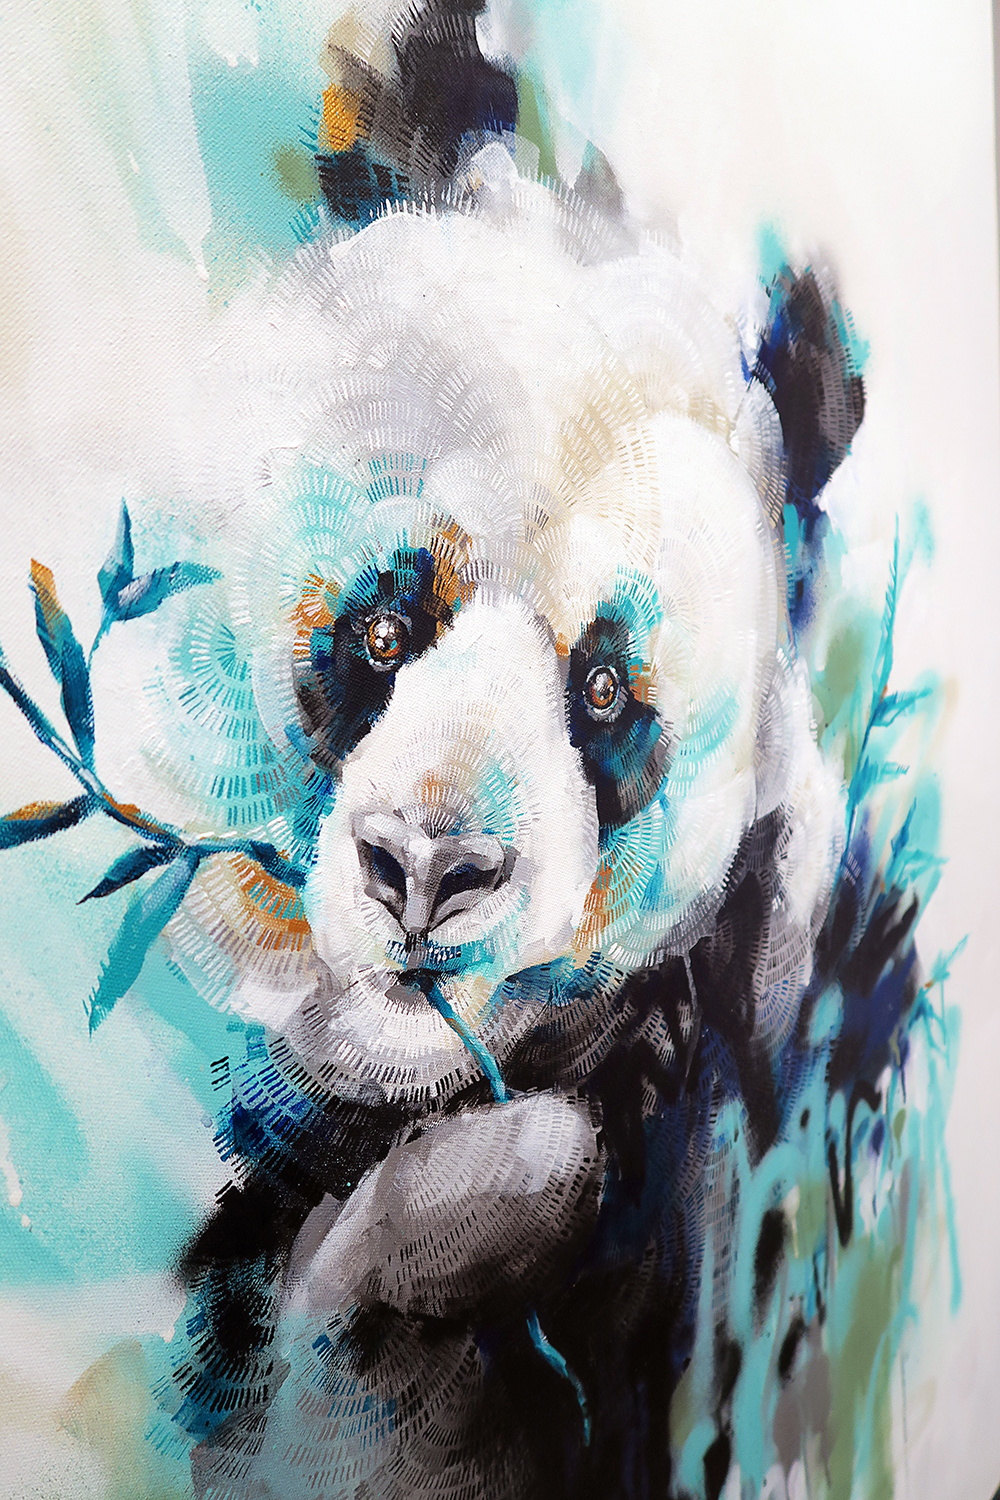 Panda with Blue – detail